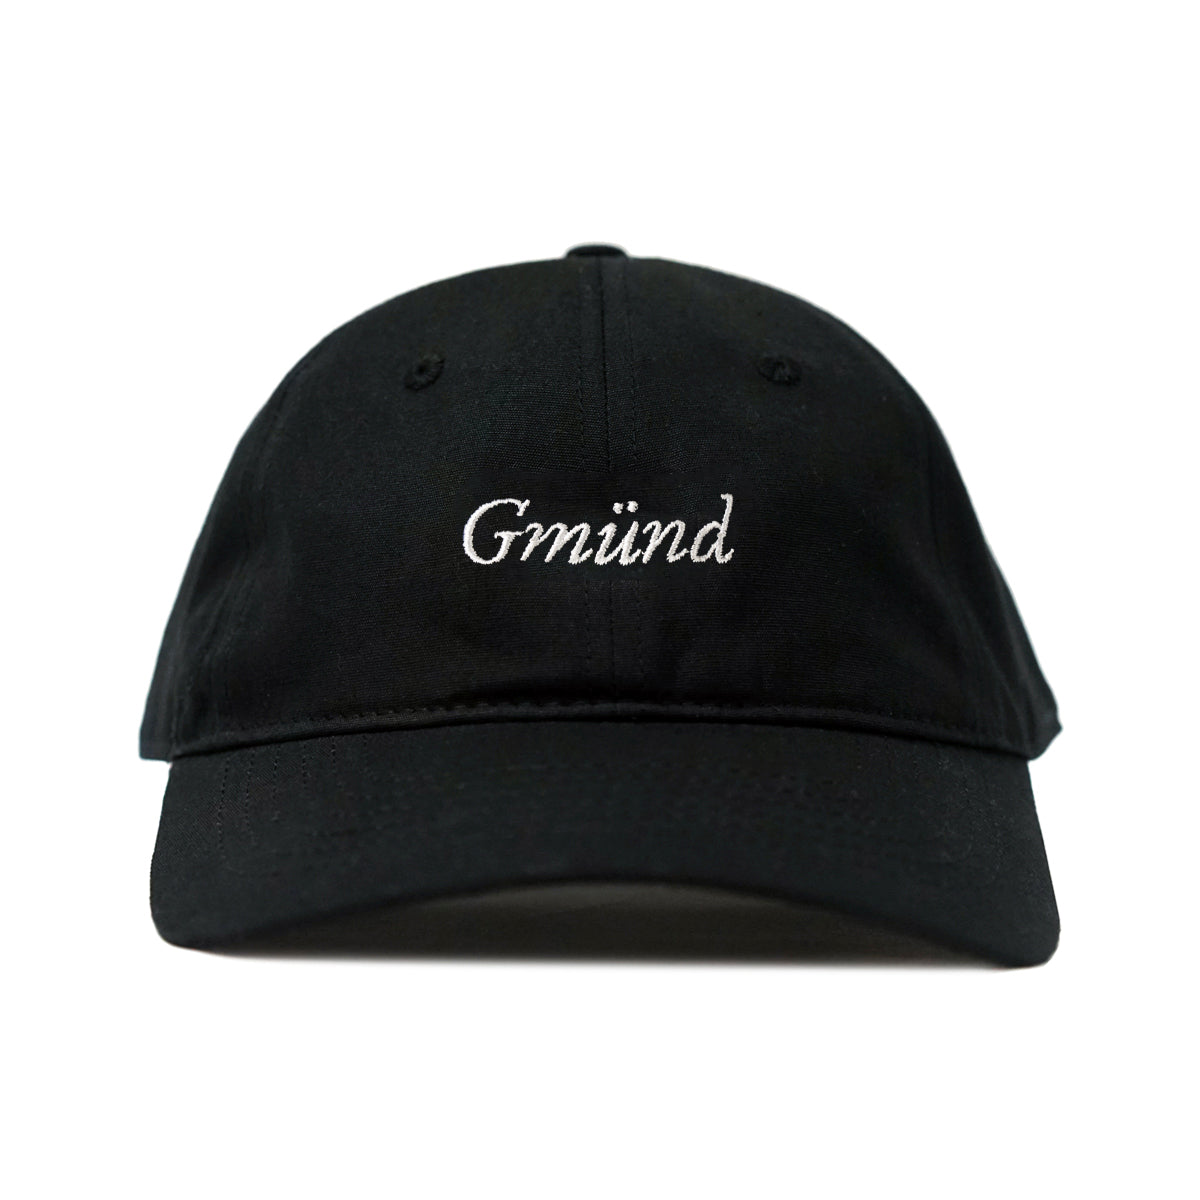 PC GMUND CAP BLACK